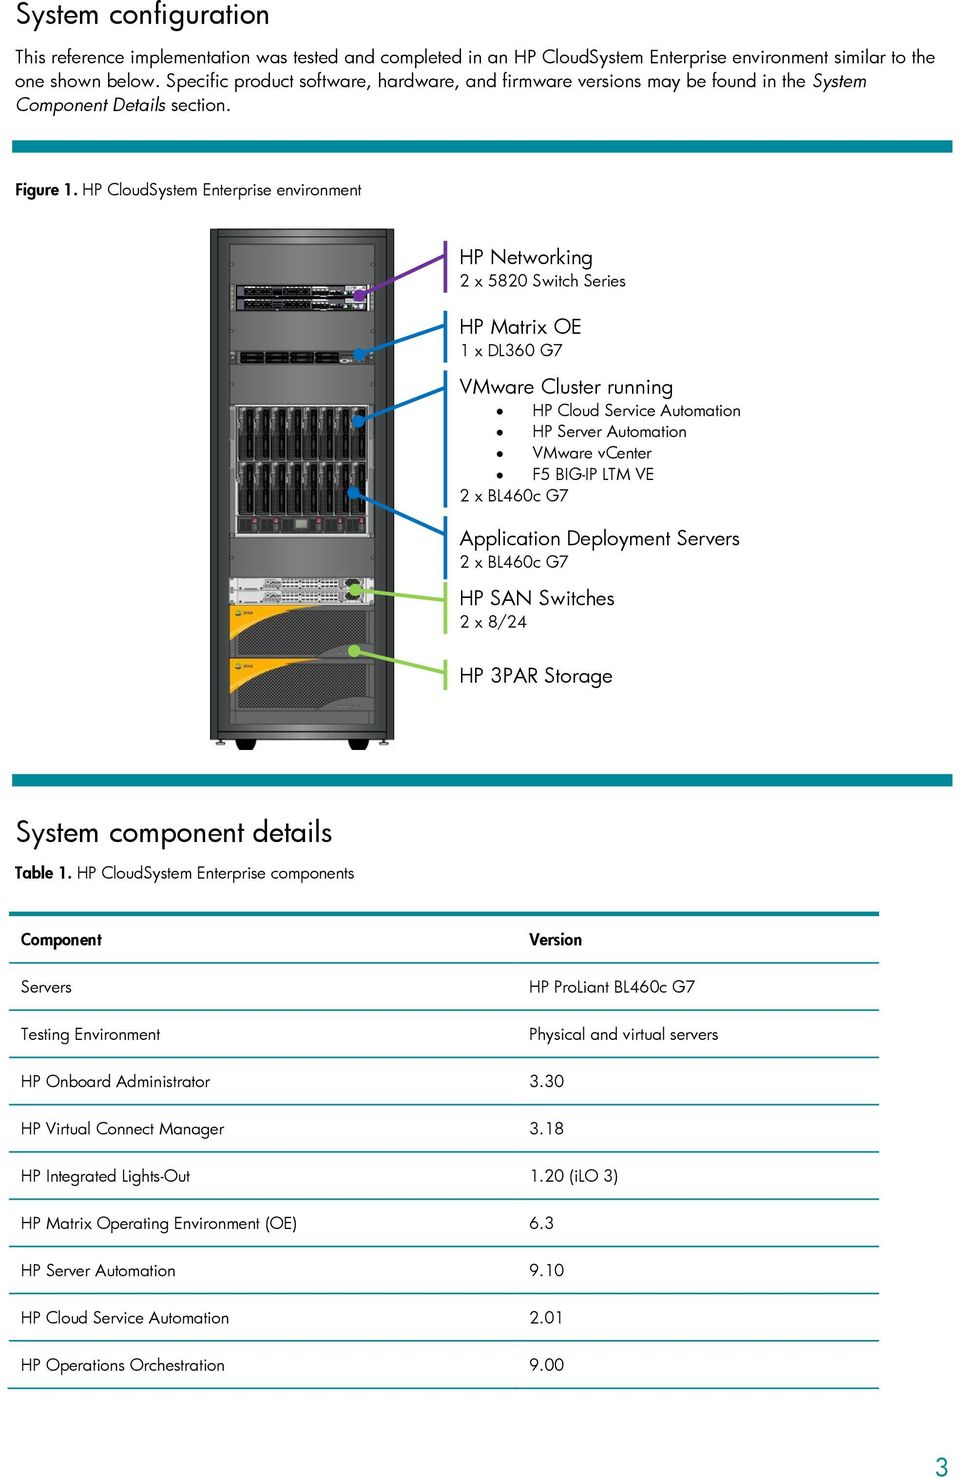 HP CloudSystem Enterprise environment HP Networking 2 x 5820 Switch Series HP Matrix OE 1 x DL360 G7 VMware Cluster running HP Cloud Service Automation HP Server Automation VMware vcenter F5 BIG-IP